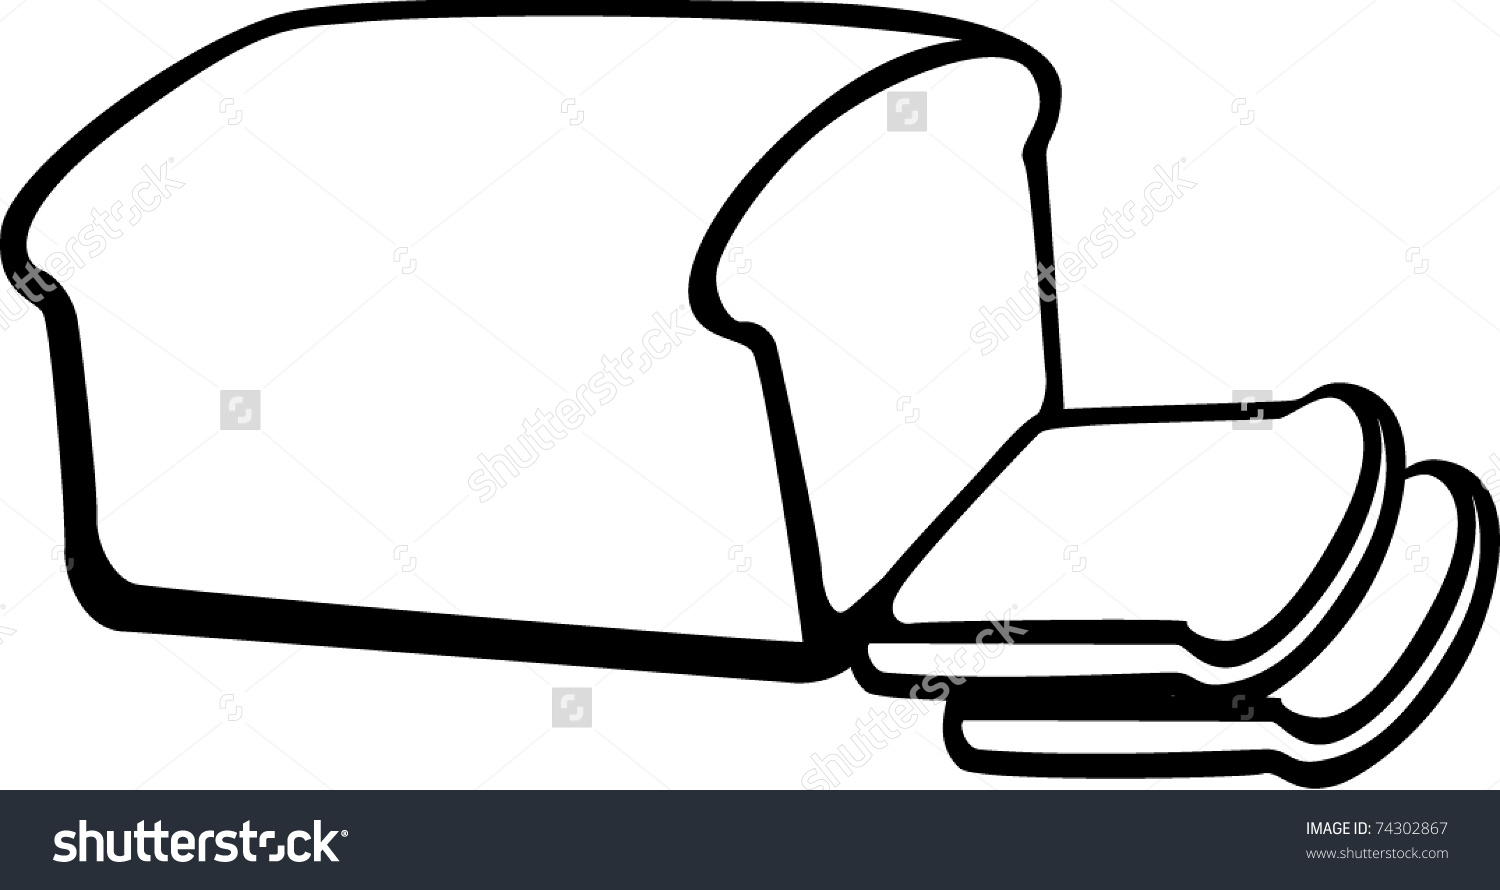 slice of bread clipart at getdrawings com free for personal use rh getdrawings com  2 slices of bread clipart